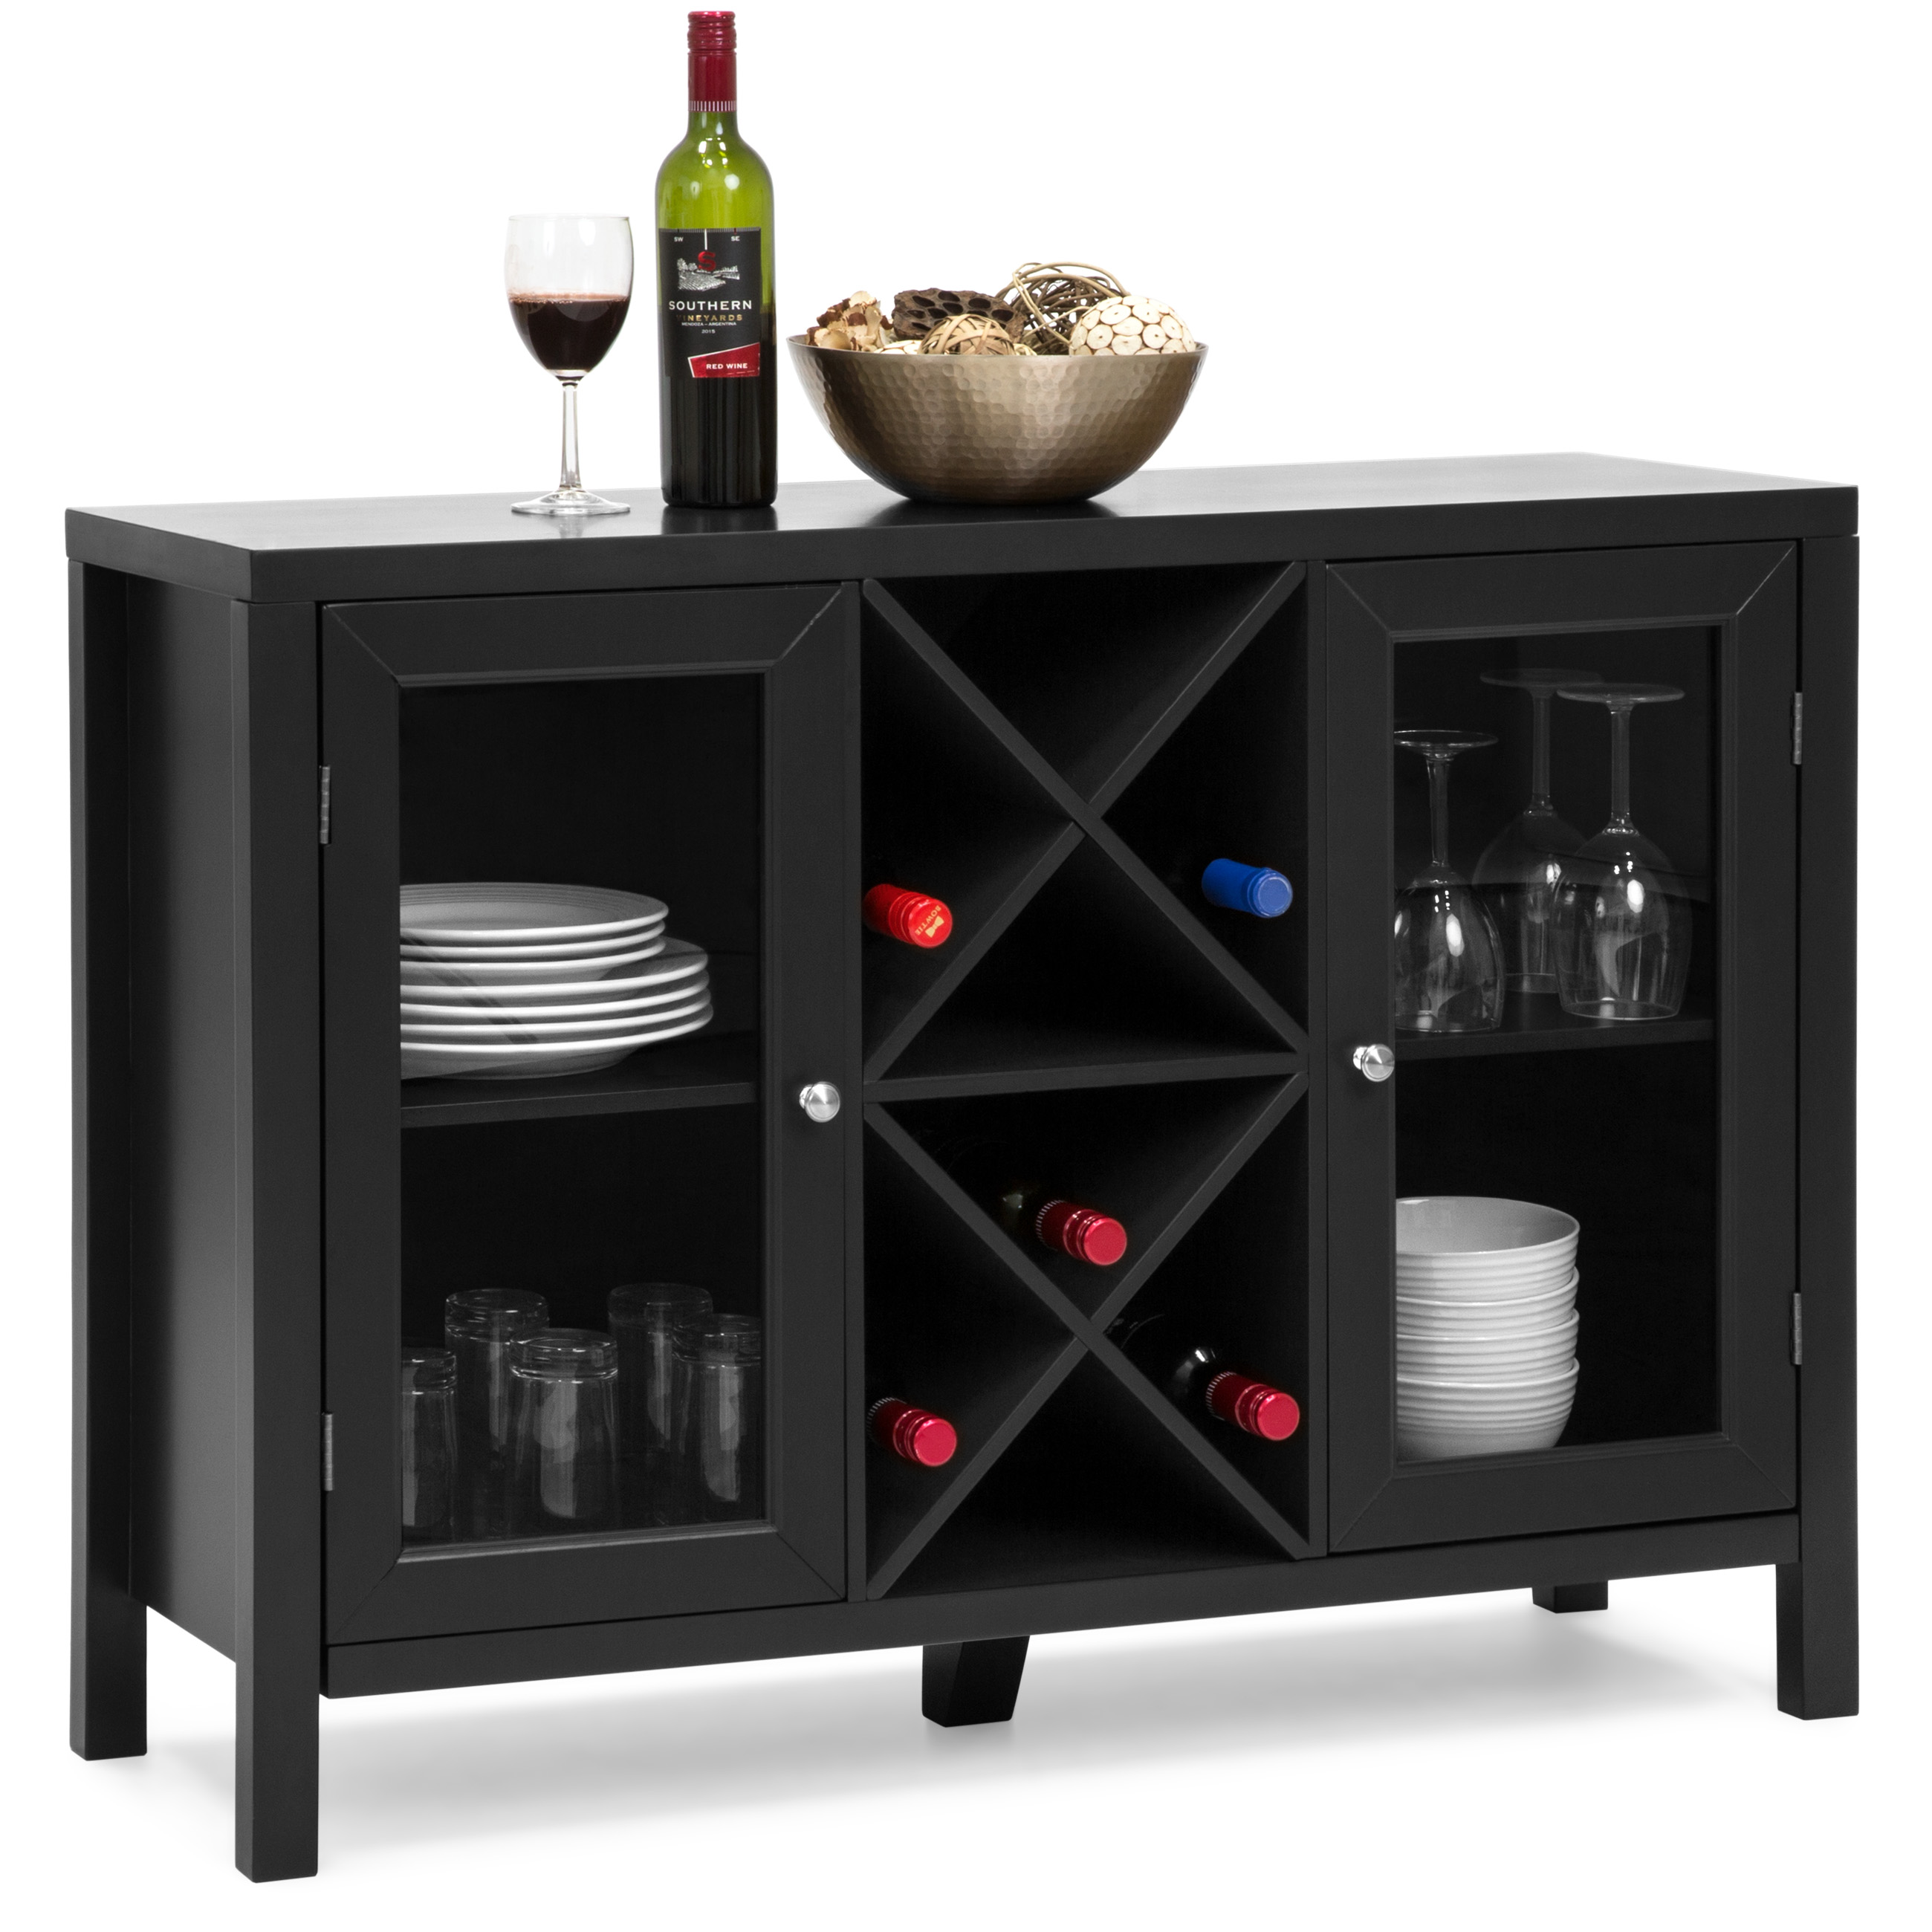 best choice products wooden wine rack console sideboard table w storage black